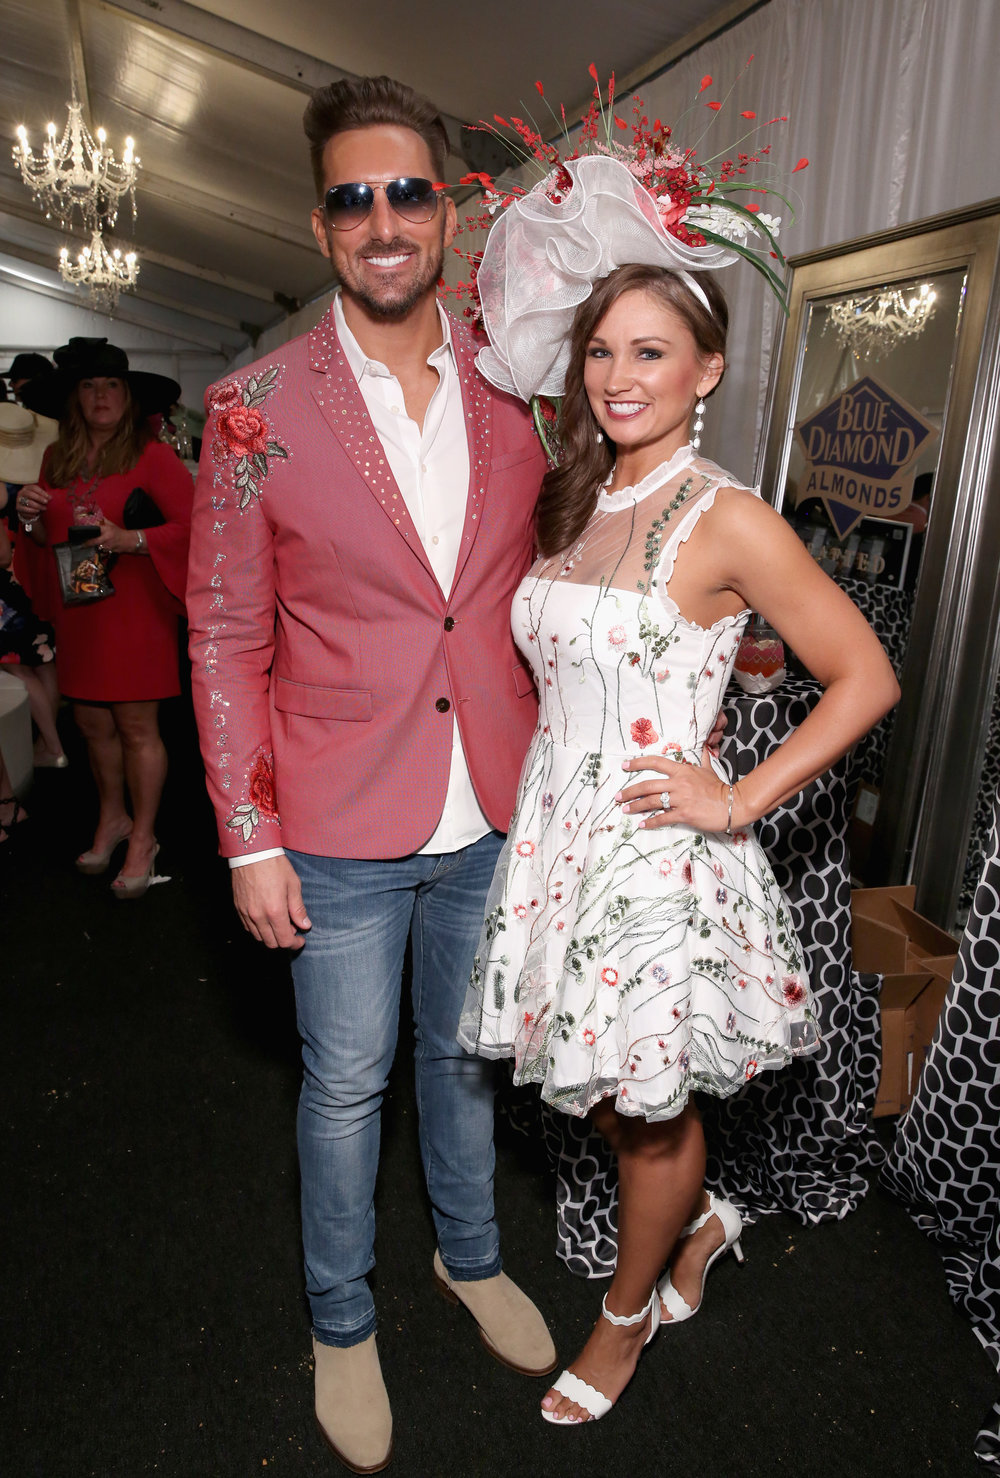 LOUISVILLE, KY - MAY 05:  Musician J.D. Shelburne attends Kentucky Derby 144 on May 5, 2018 in Louisville, Kentucky.  (Photo by Robin Marchant/Getty Images for Churchill Downs) *** Local Caption *** J.D. Shelburne